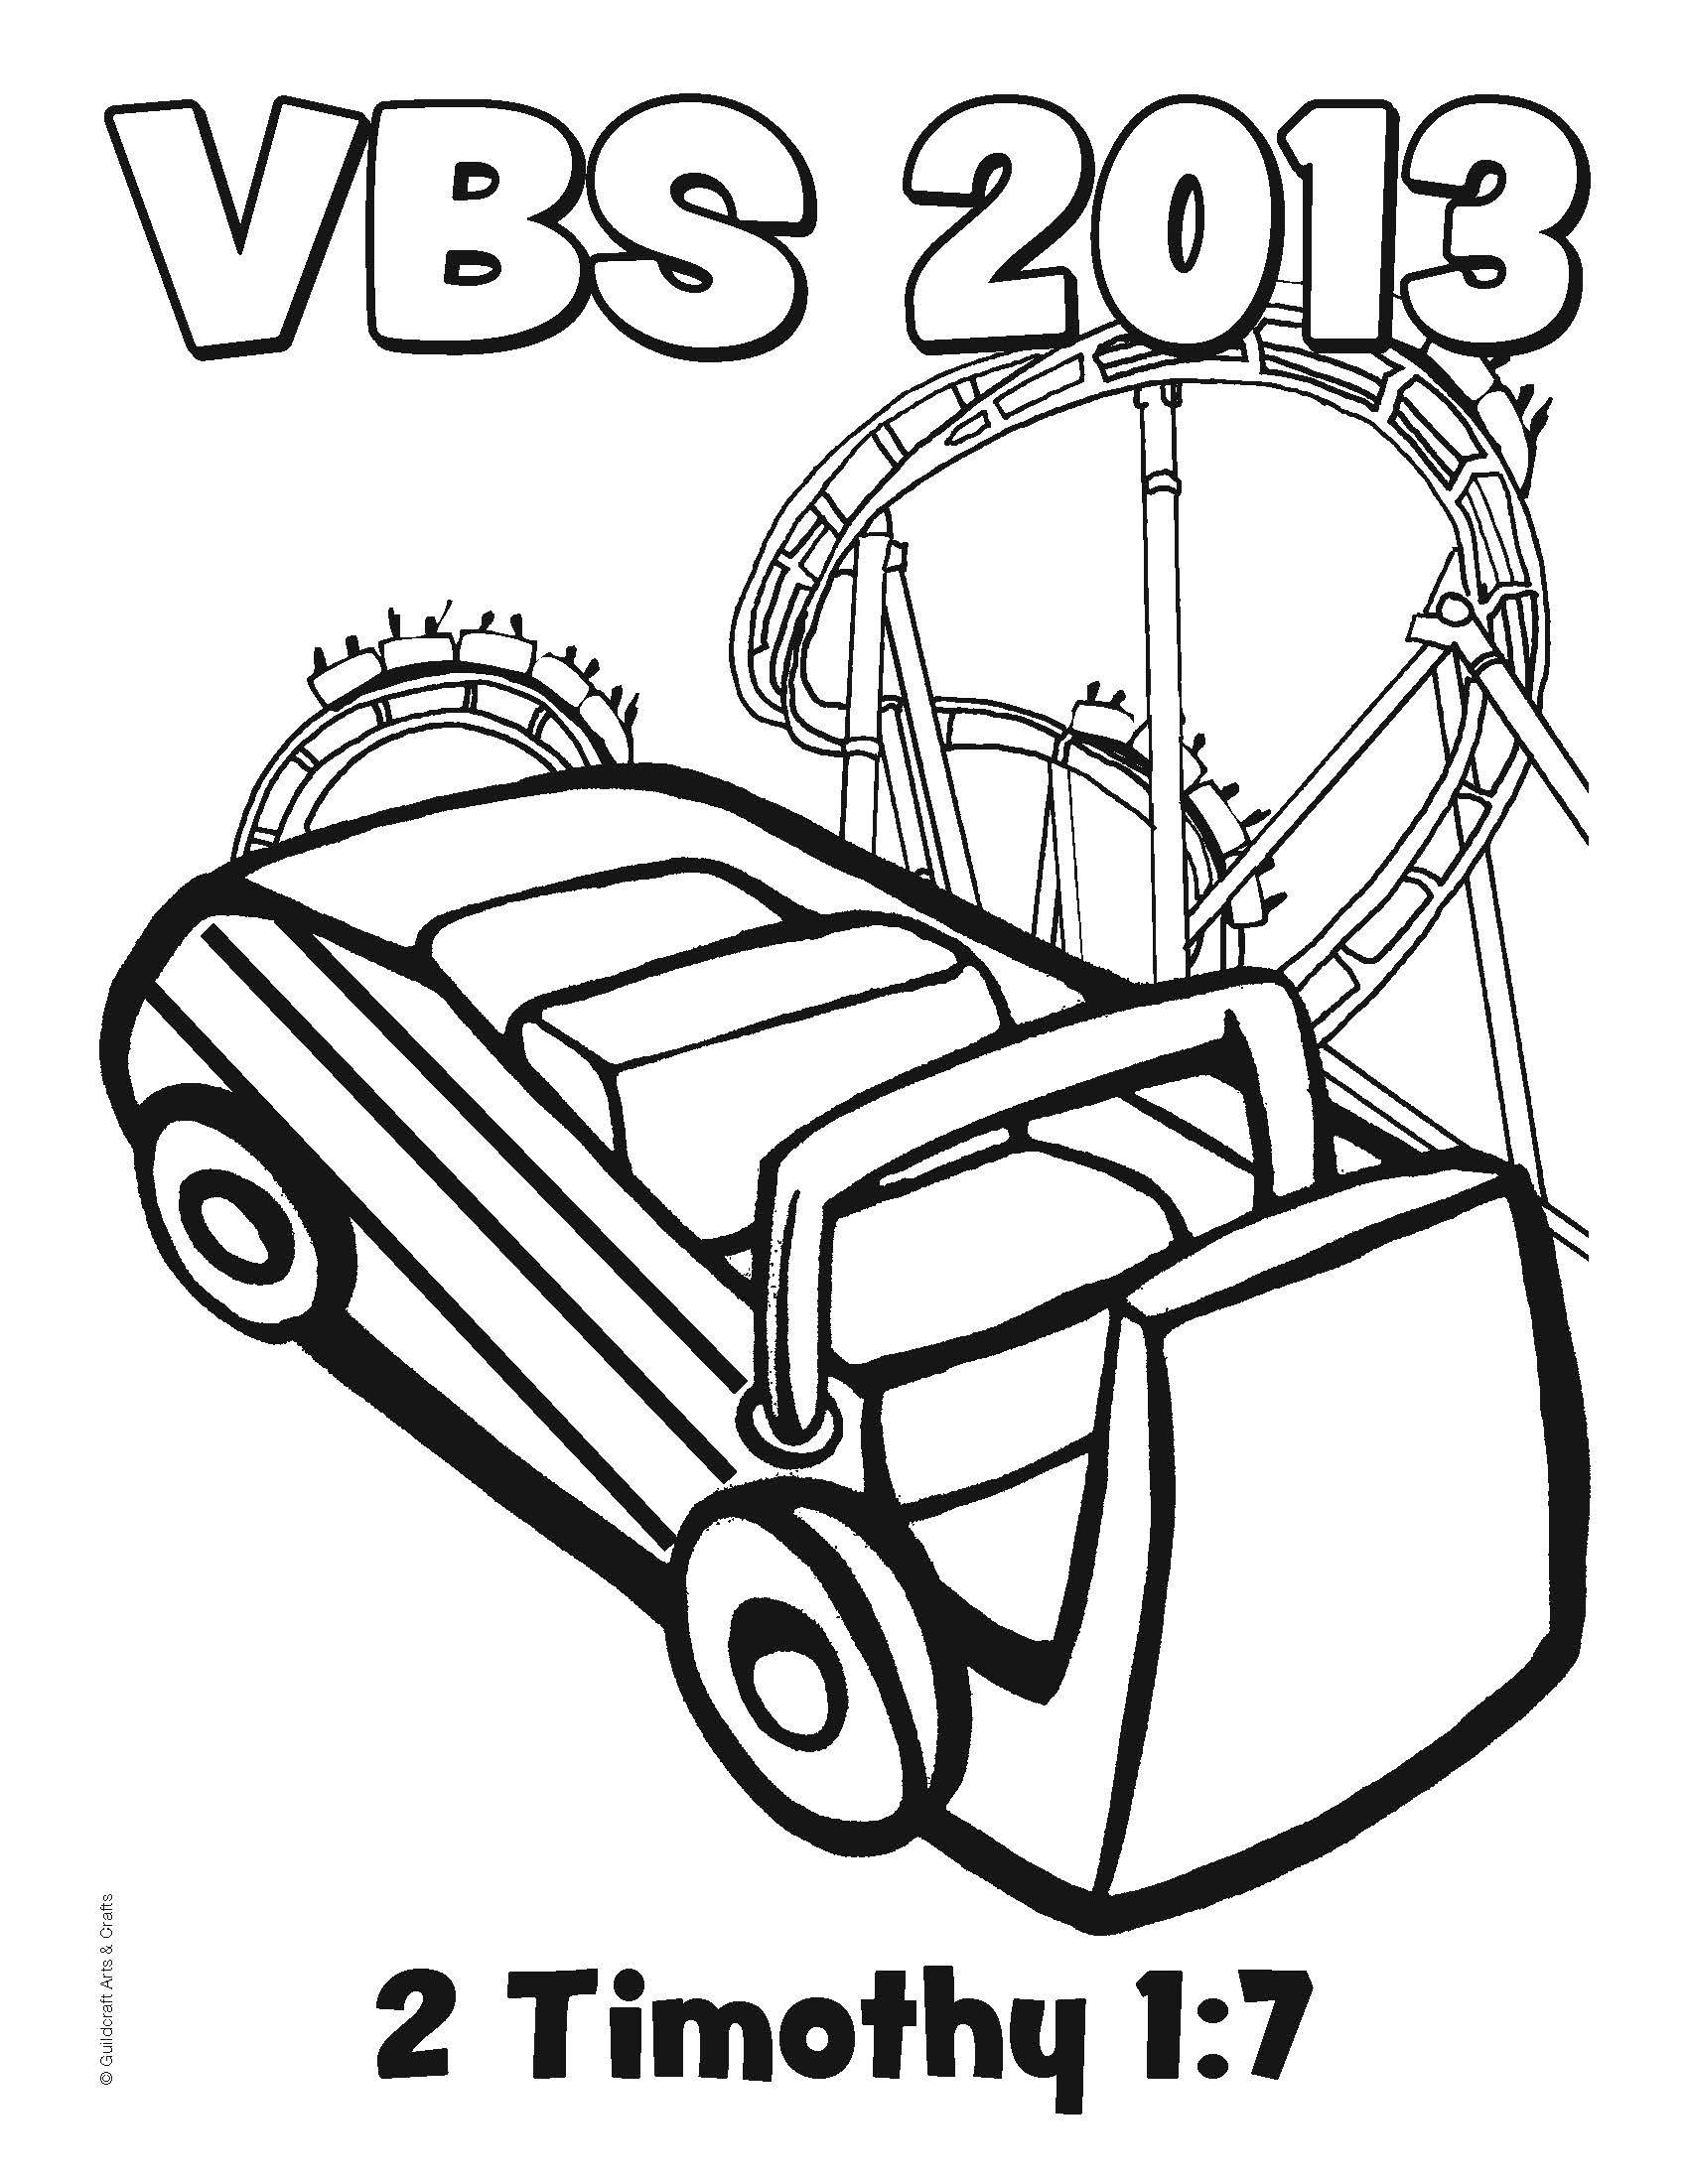 Roller Coaster Coloring Pages Download And Print For Free - Roller-coaster-coloring-page